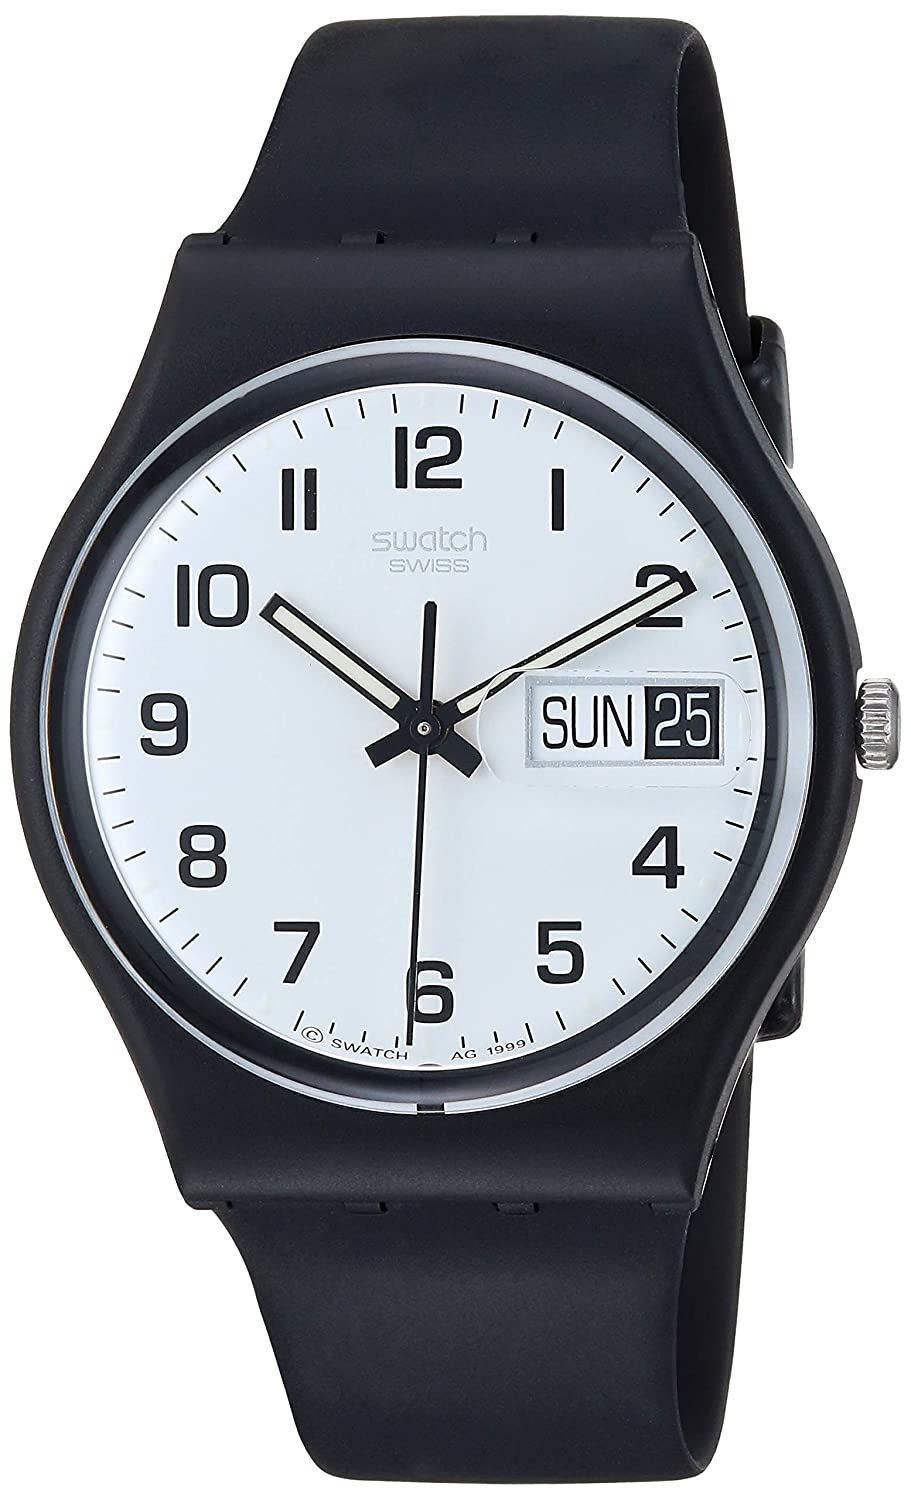 Swatch Once Again – GB743